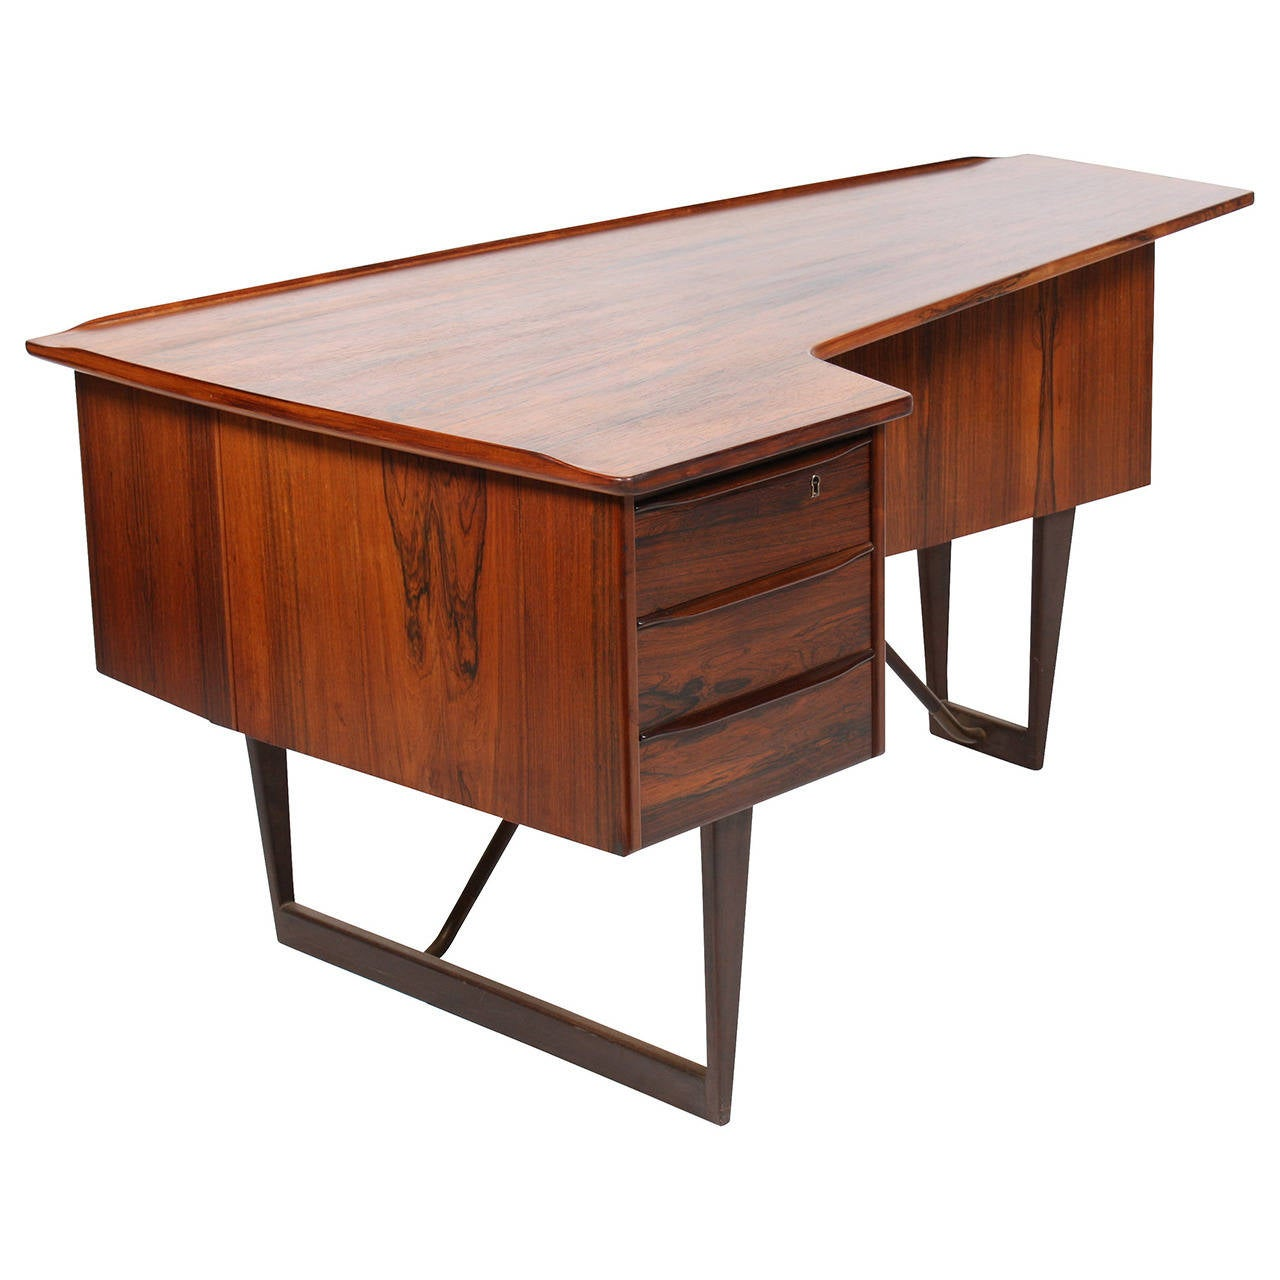 Desk in Rosewood by SA Madsen 1